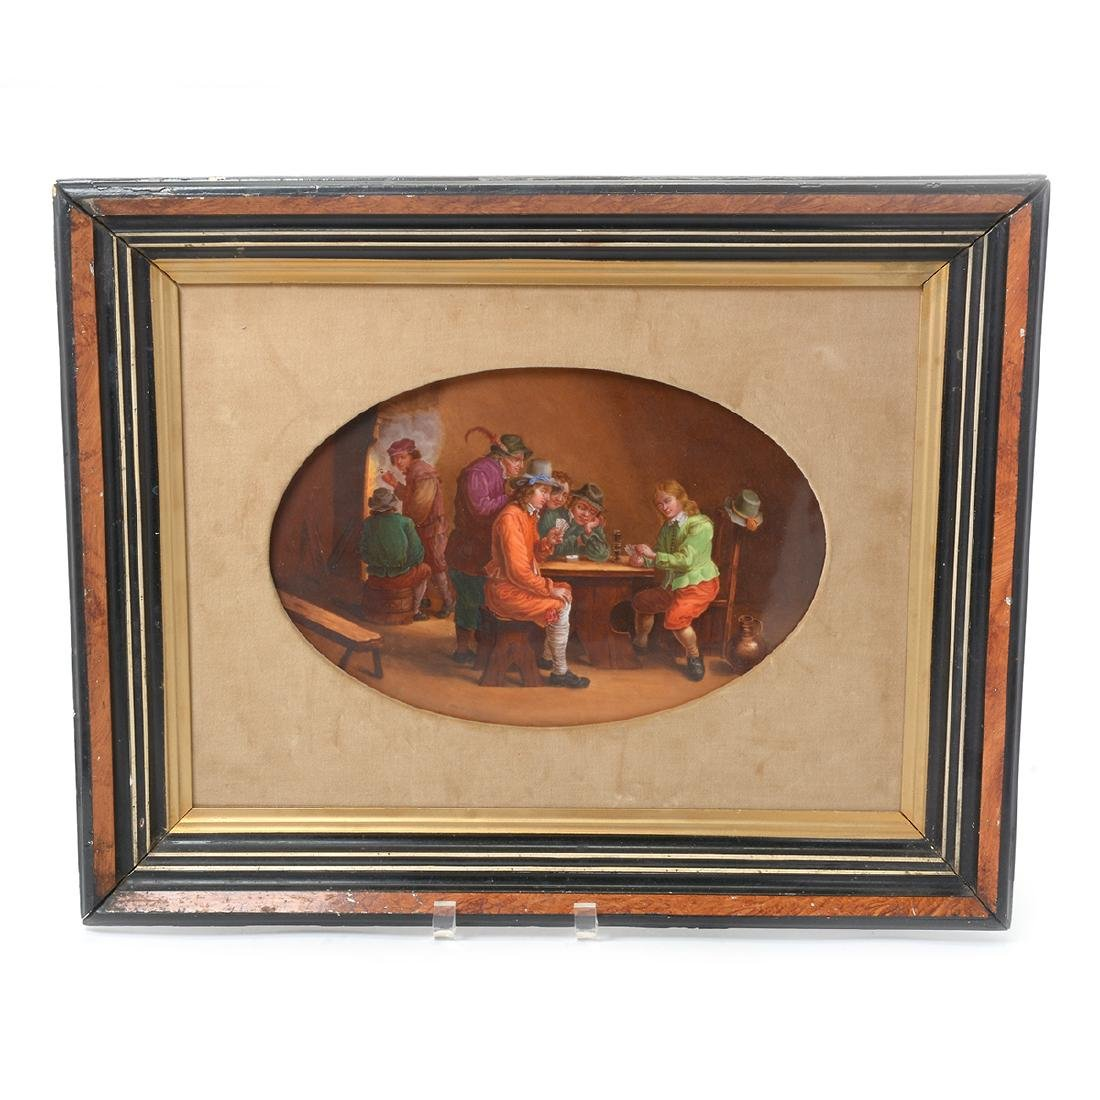 French Porcelain Plaque of Tavern Scene